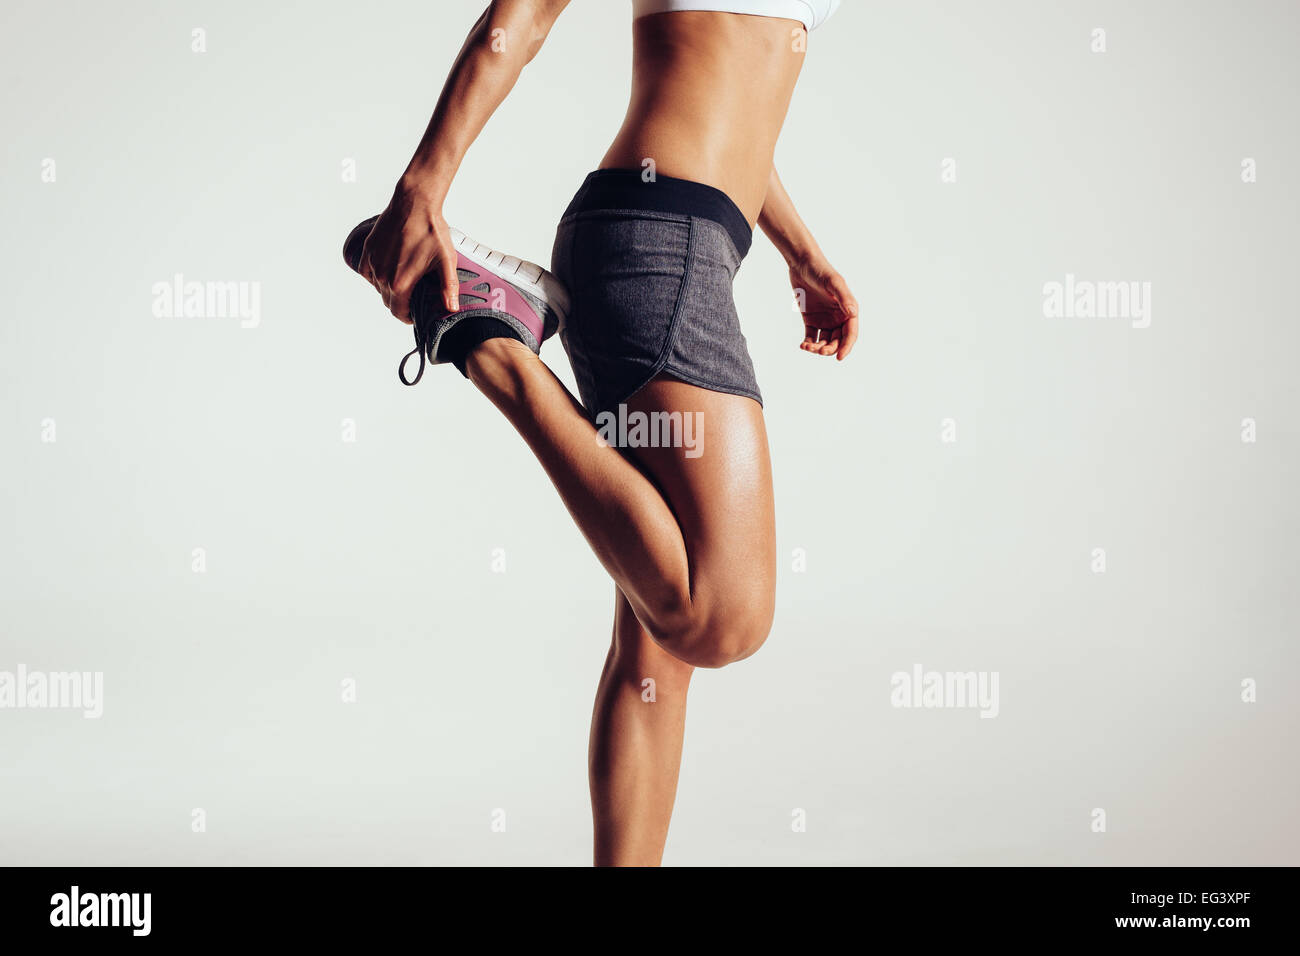 Cropped image of a fitness woman stretching her legs against grey background.  Fit female runner doing stretches. Stock Photo